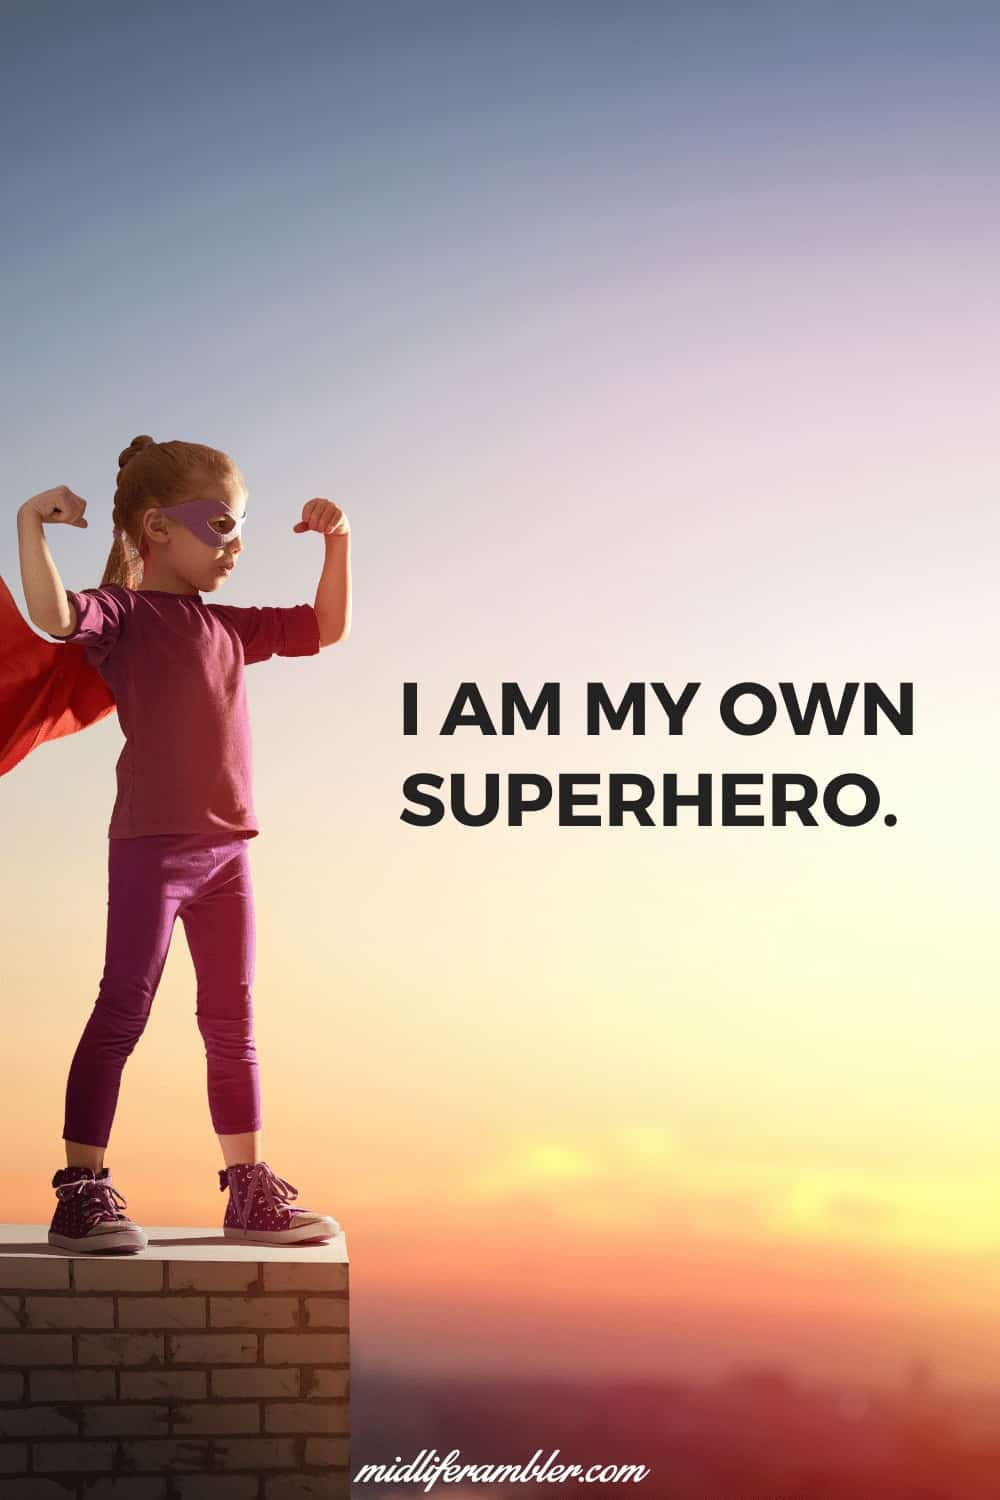 Affirmations for Self-Compassion - I am my own superhero.